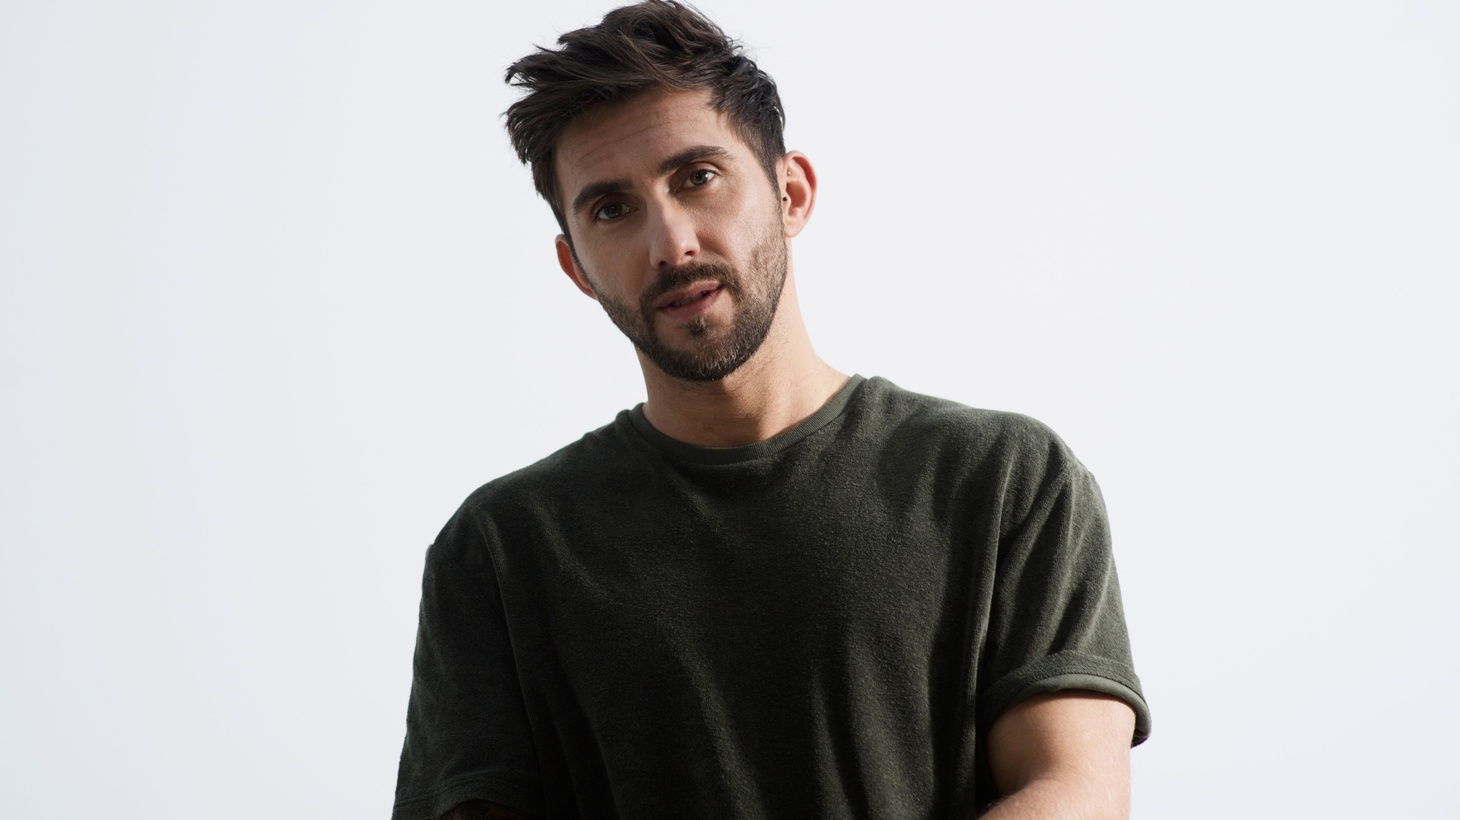 Daley Padley, also known as Hot Since 82, is a British DJ, house music producer and DJ Awards winner currently based in Leeds, UK. With massive hit after hit, Hot Since 82 is responsible for some of the best parties at the world's most elite clubs and he's stopped by to create an exclusive mix for this week's Metropolis.